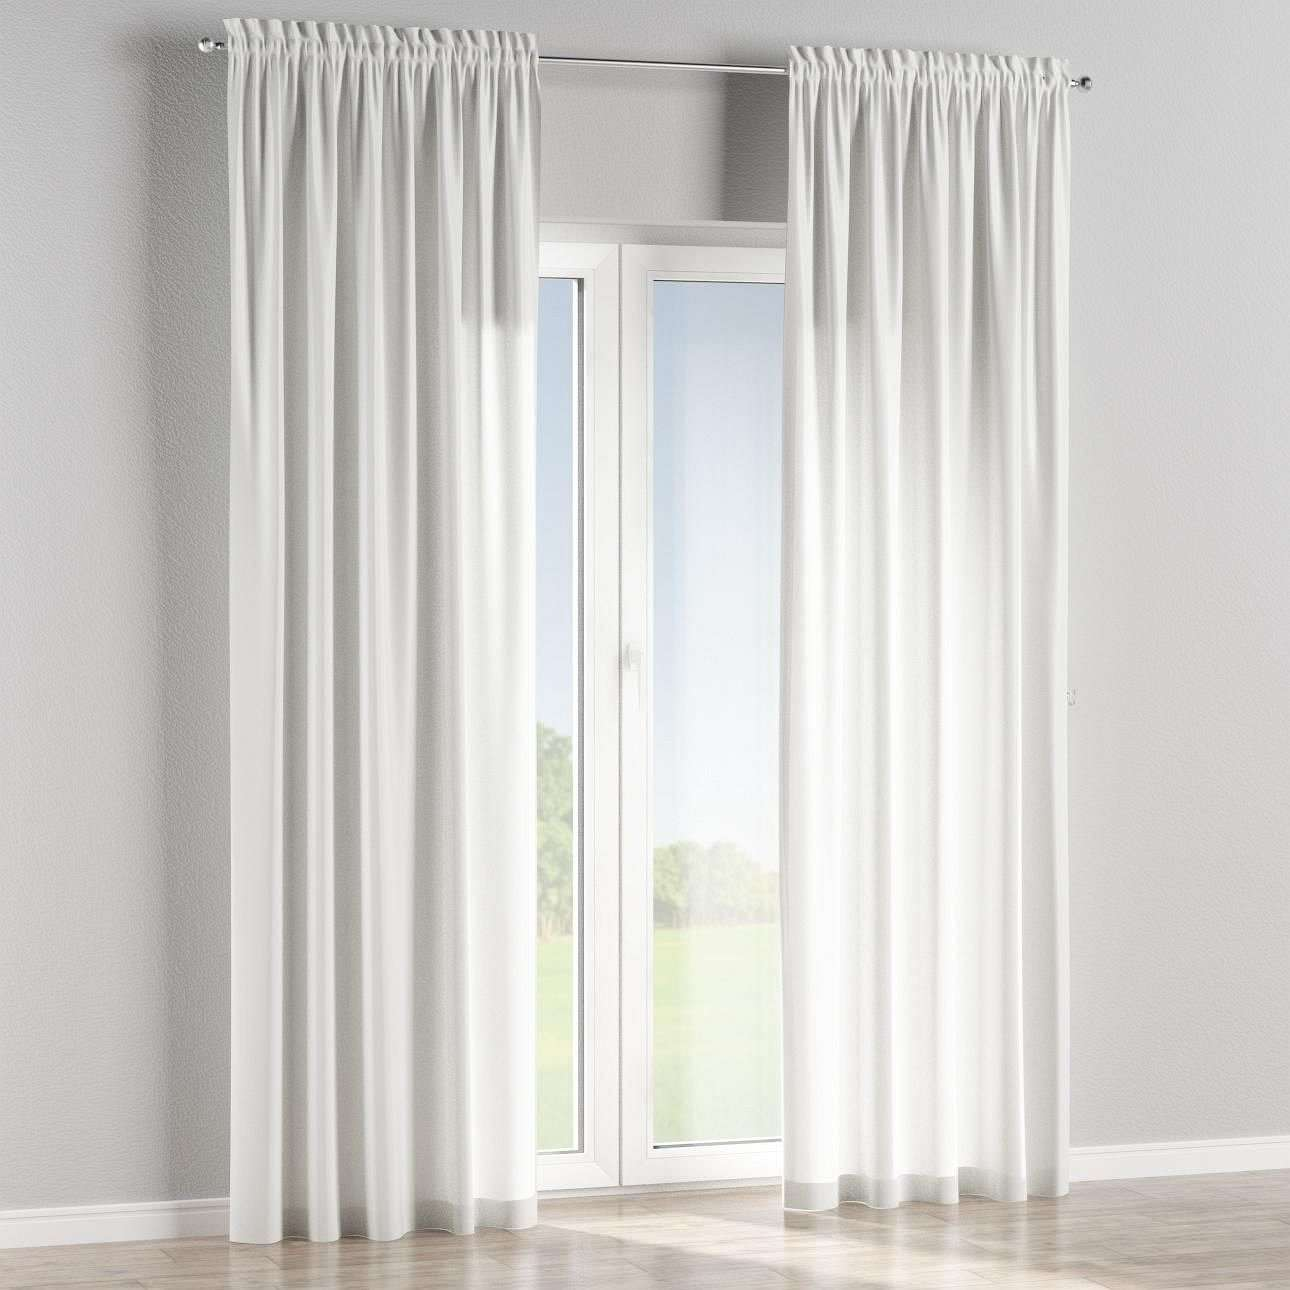 Slot and frill curtains in collection Fleur , fabric: 137-22